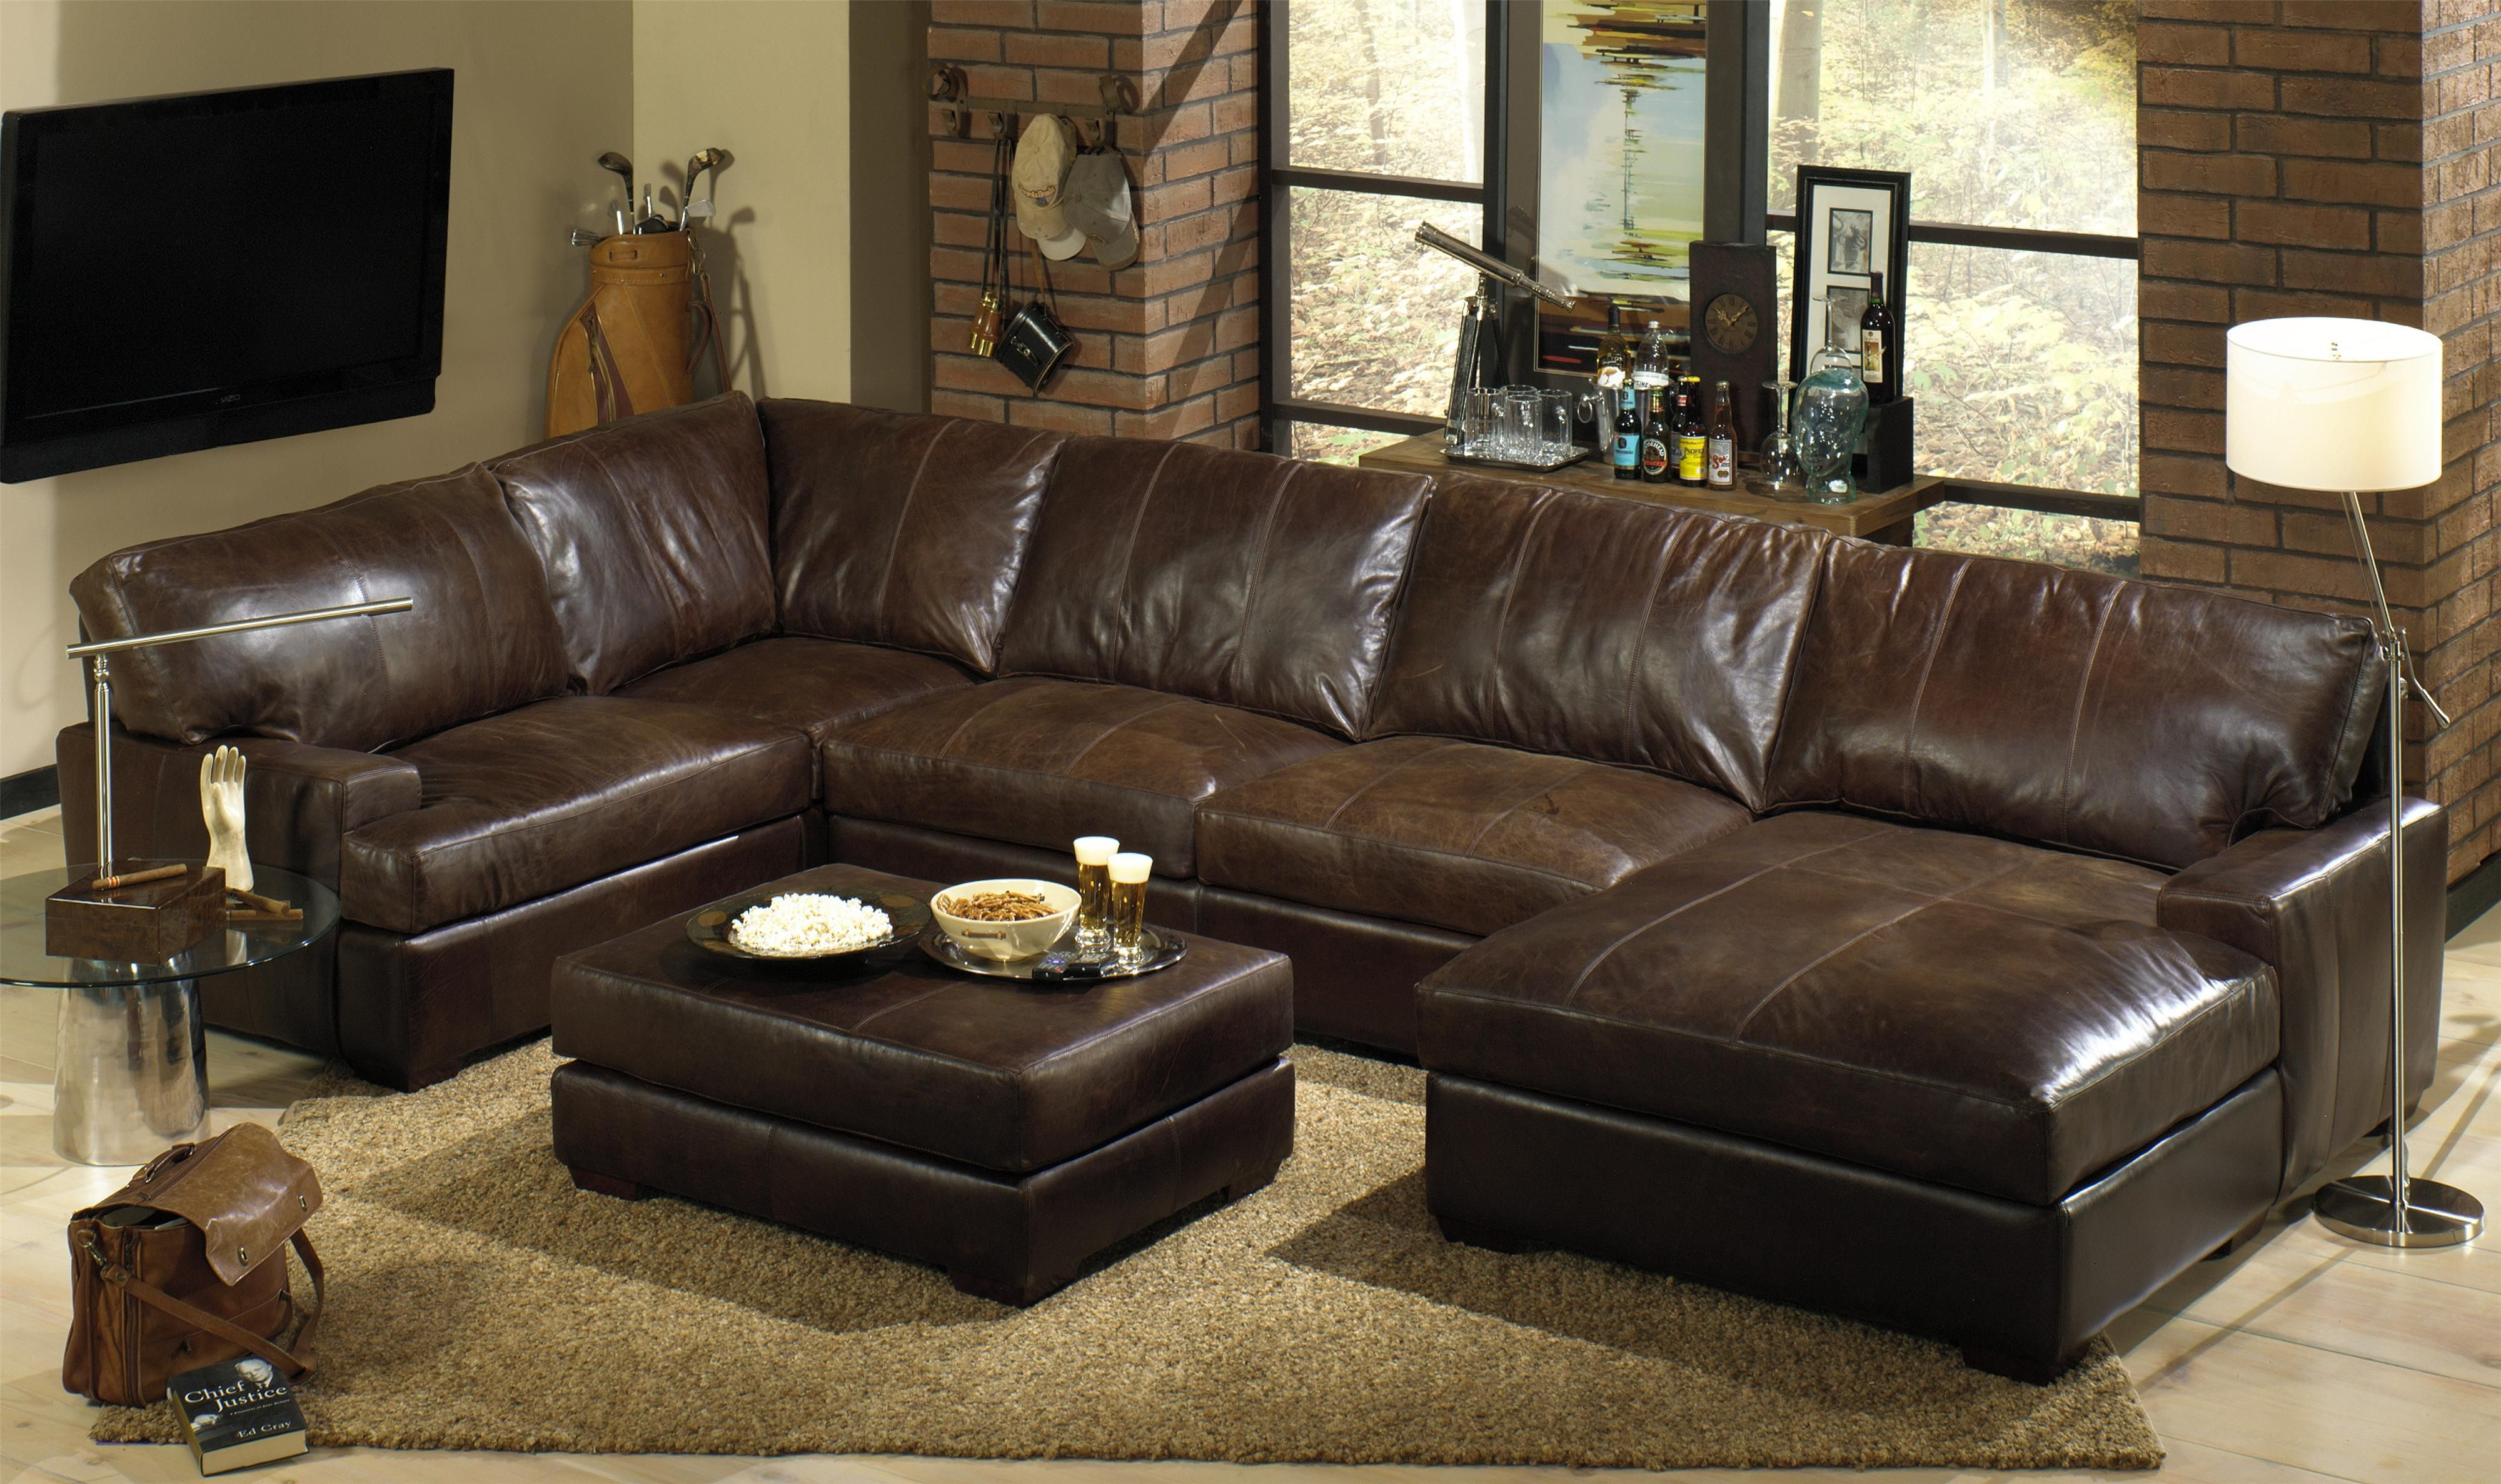 Ledersofa Rustikal Awesome Good Sectional Leather Sofa 75 On Interior Designing Home